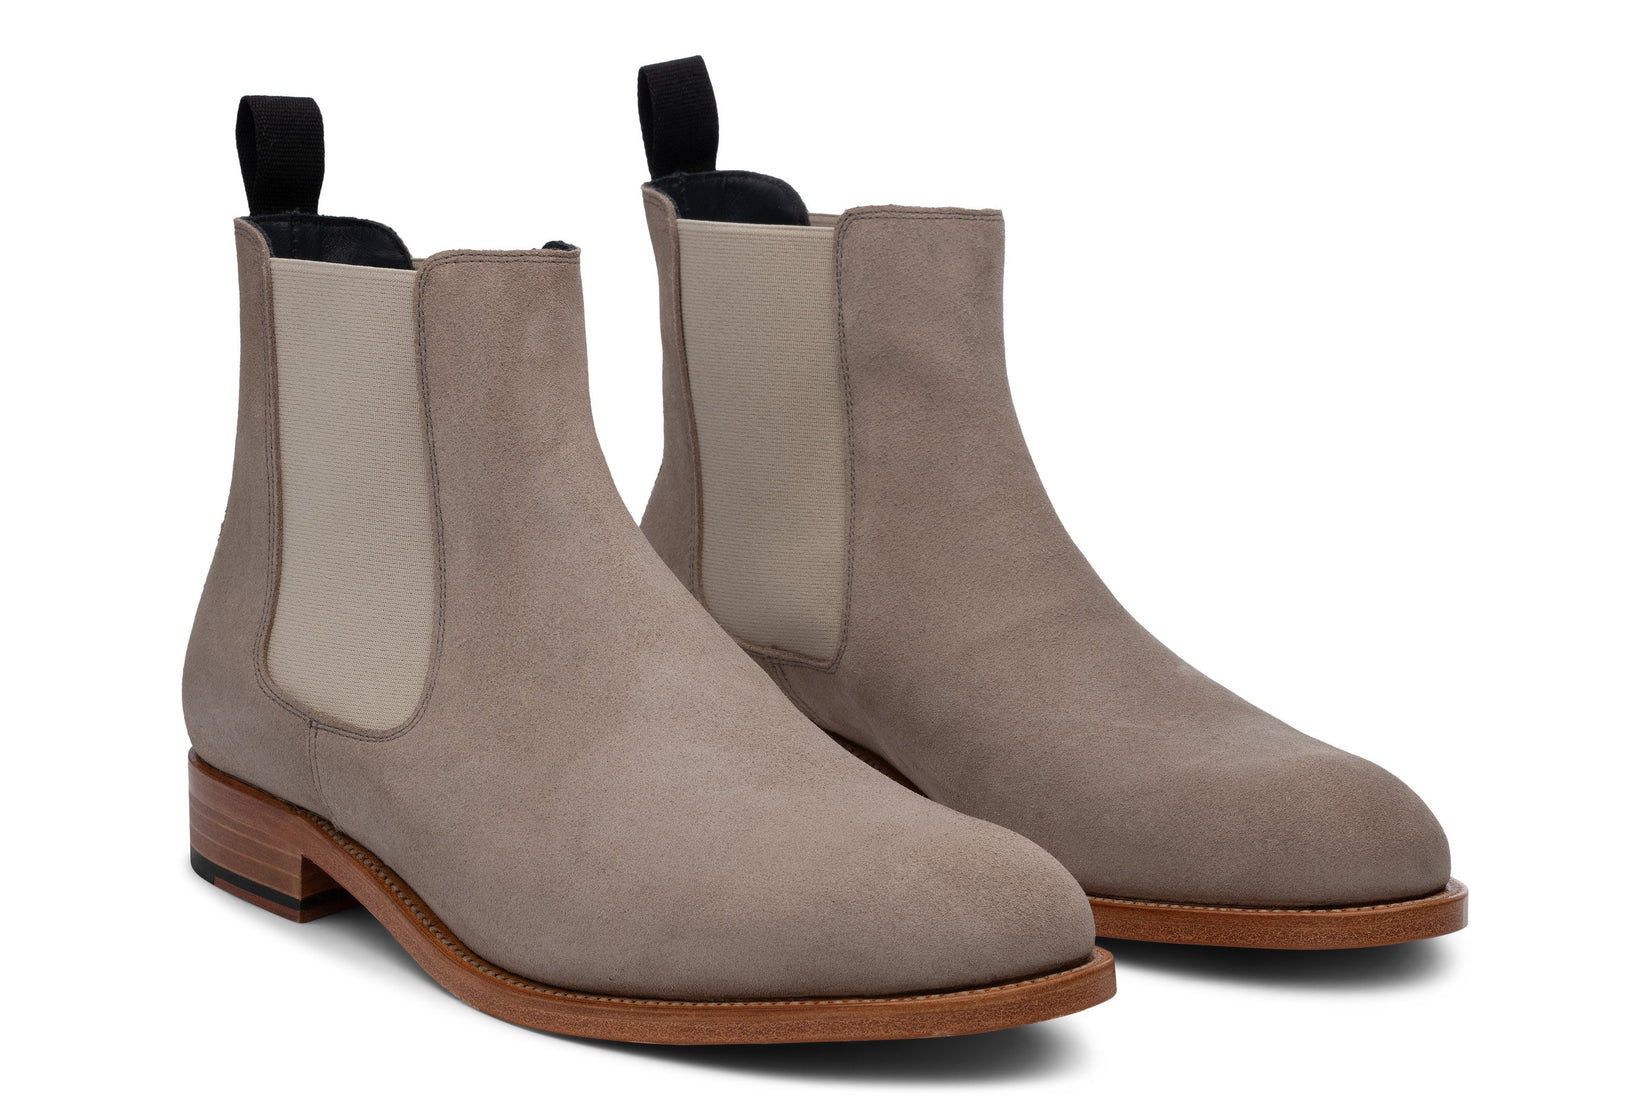 Wednesday Chelsea Boot in Taupe